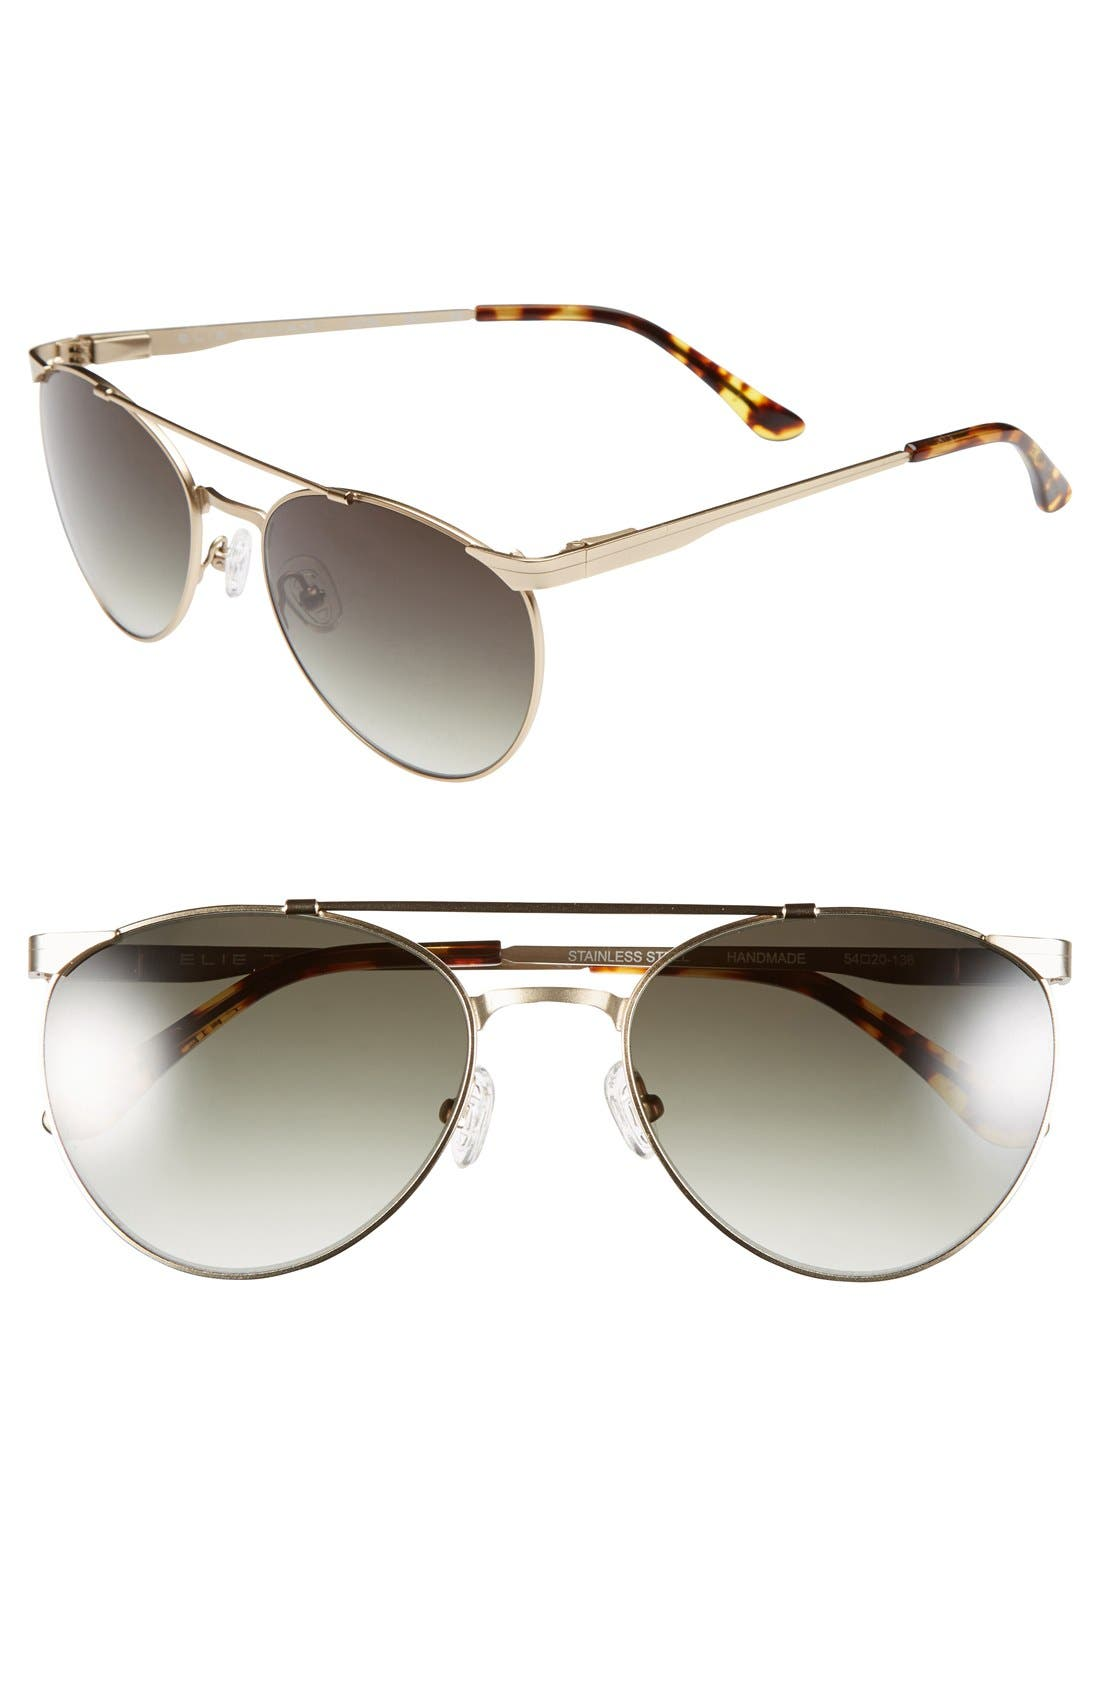 Alternate Image 1 Selected - Elie Tahari 54mm Aviator Sunglasses